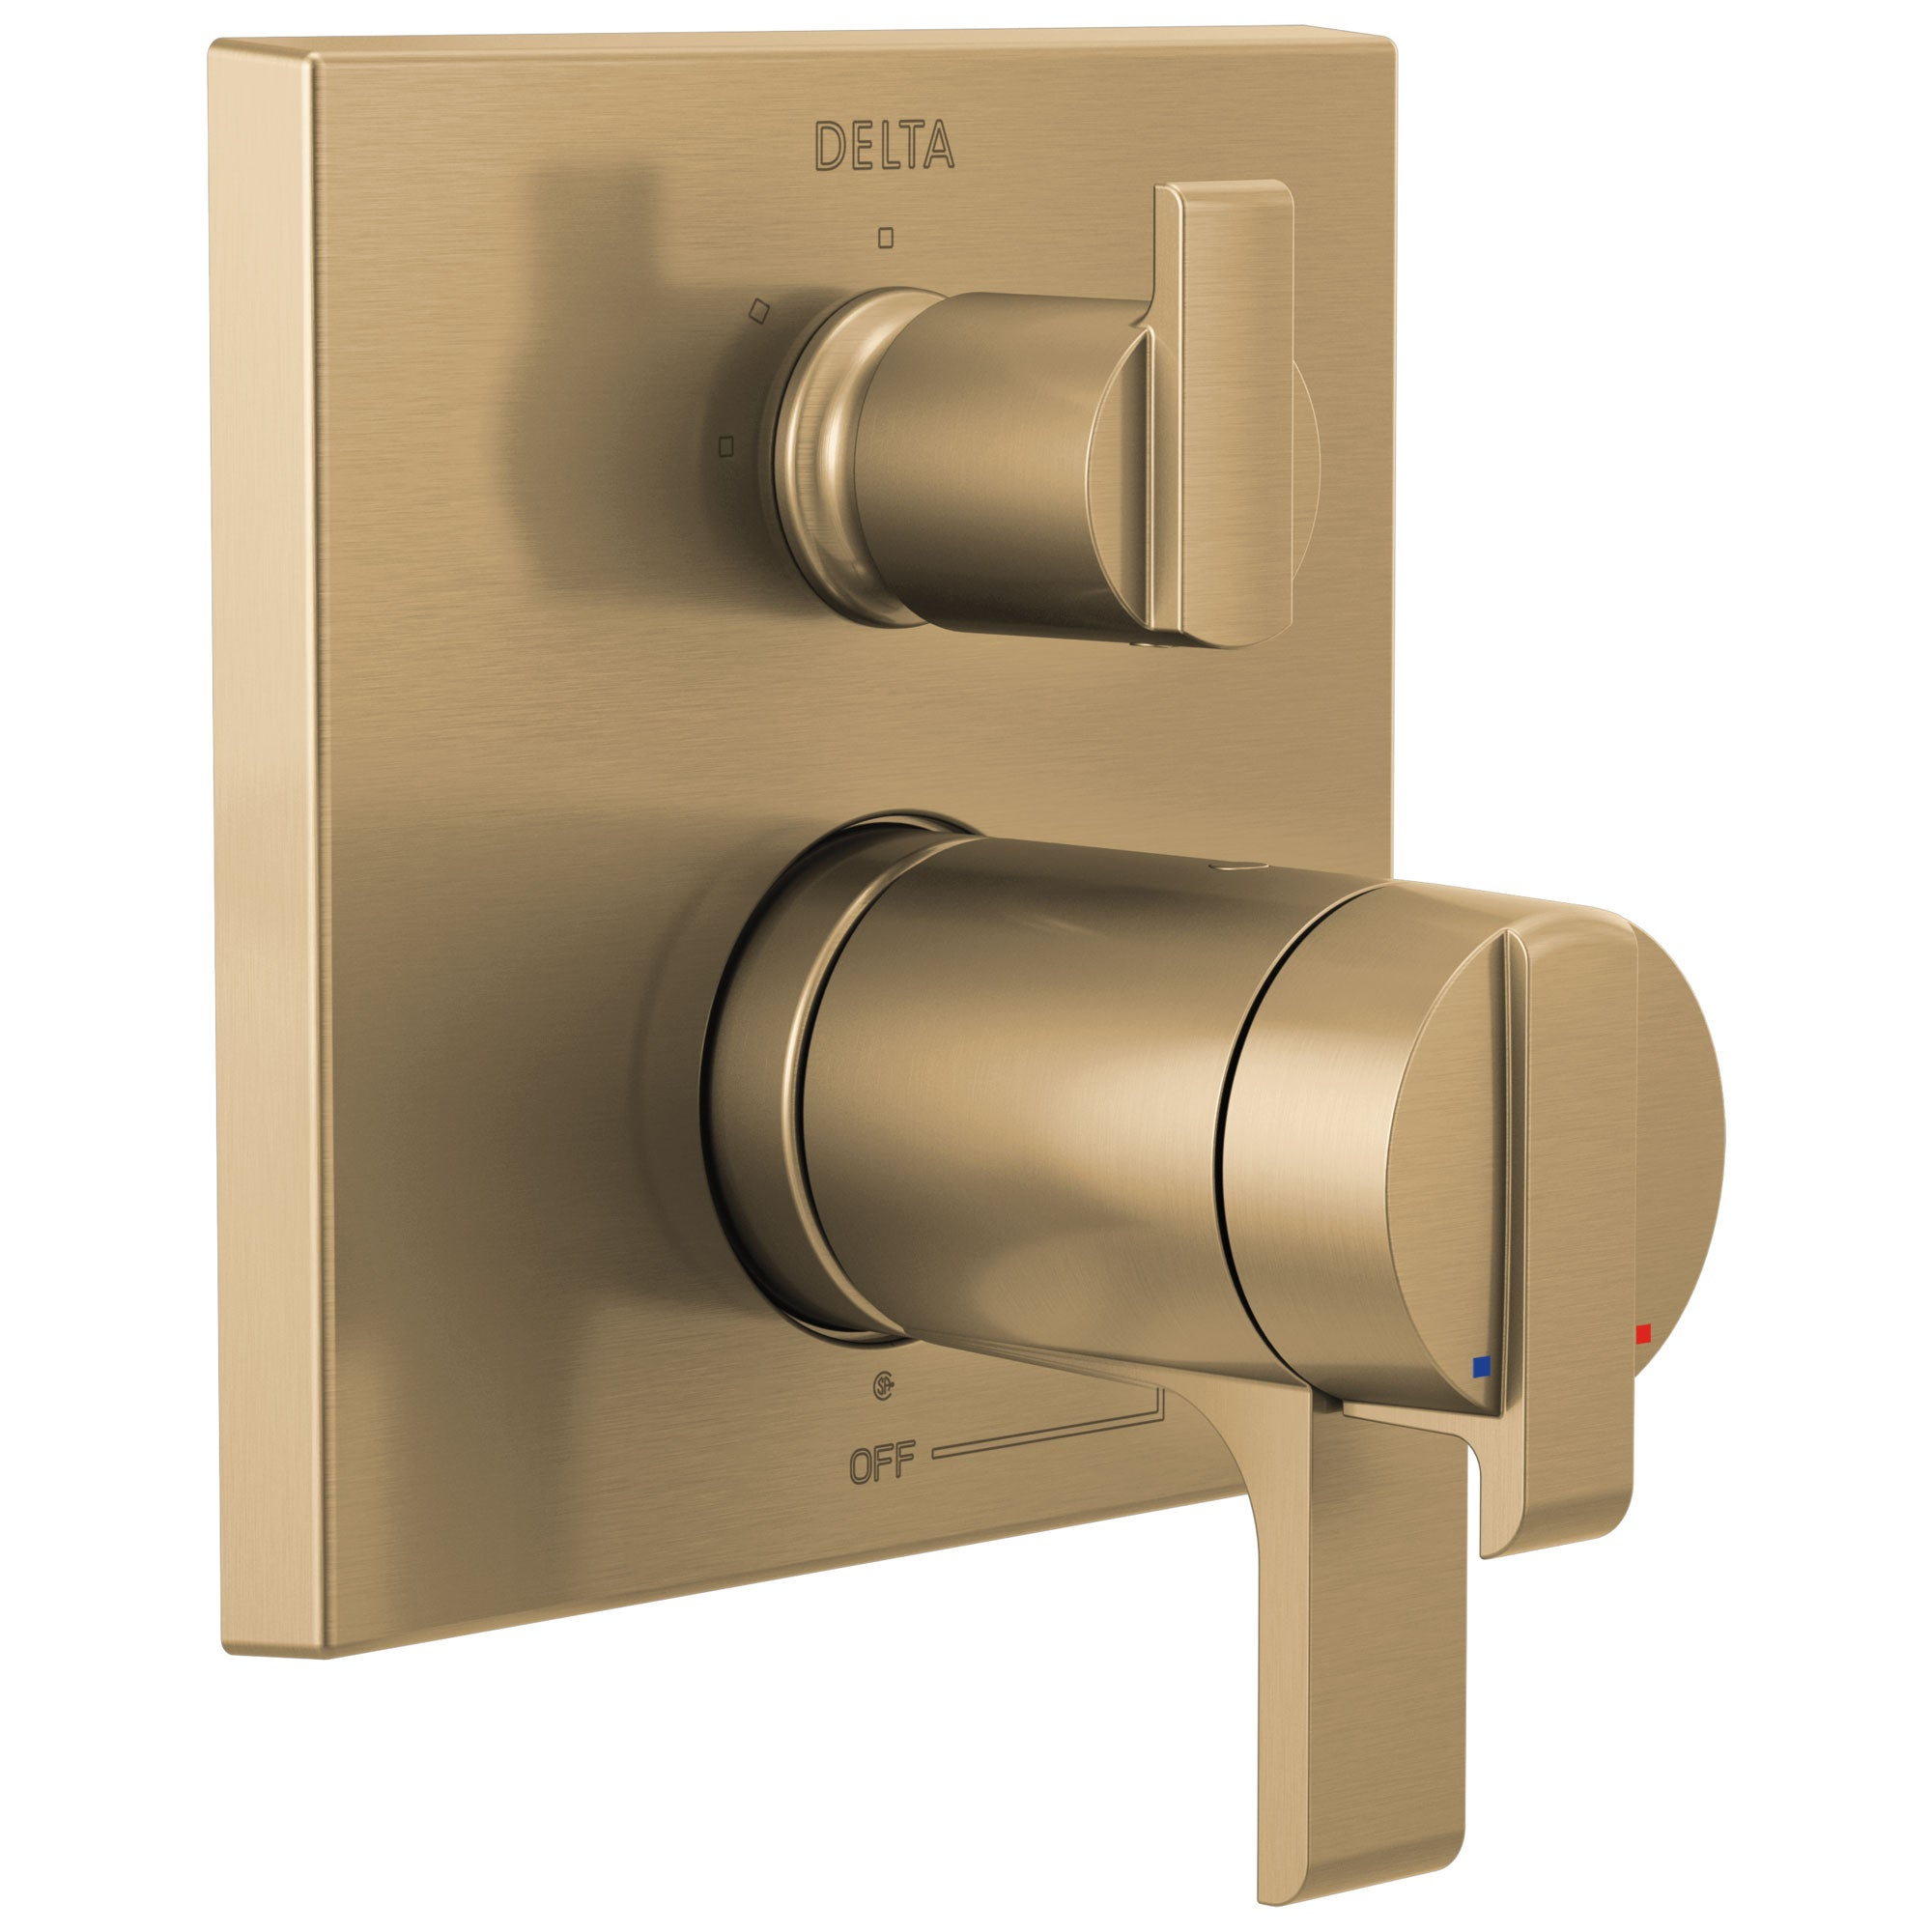 Delta Ara Modern Champagne Bronze Finish Thermostatic Shower System Control with 3-Setting Integrated Diverter Includes Valve and Handles D3105V